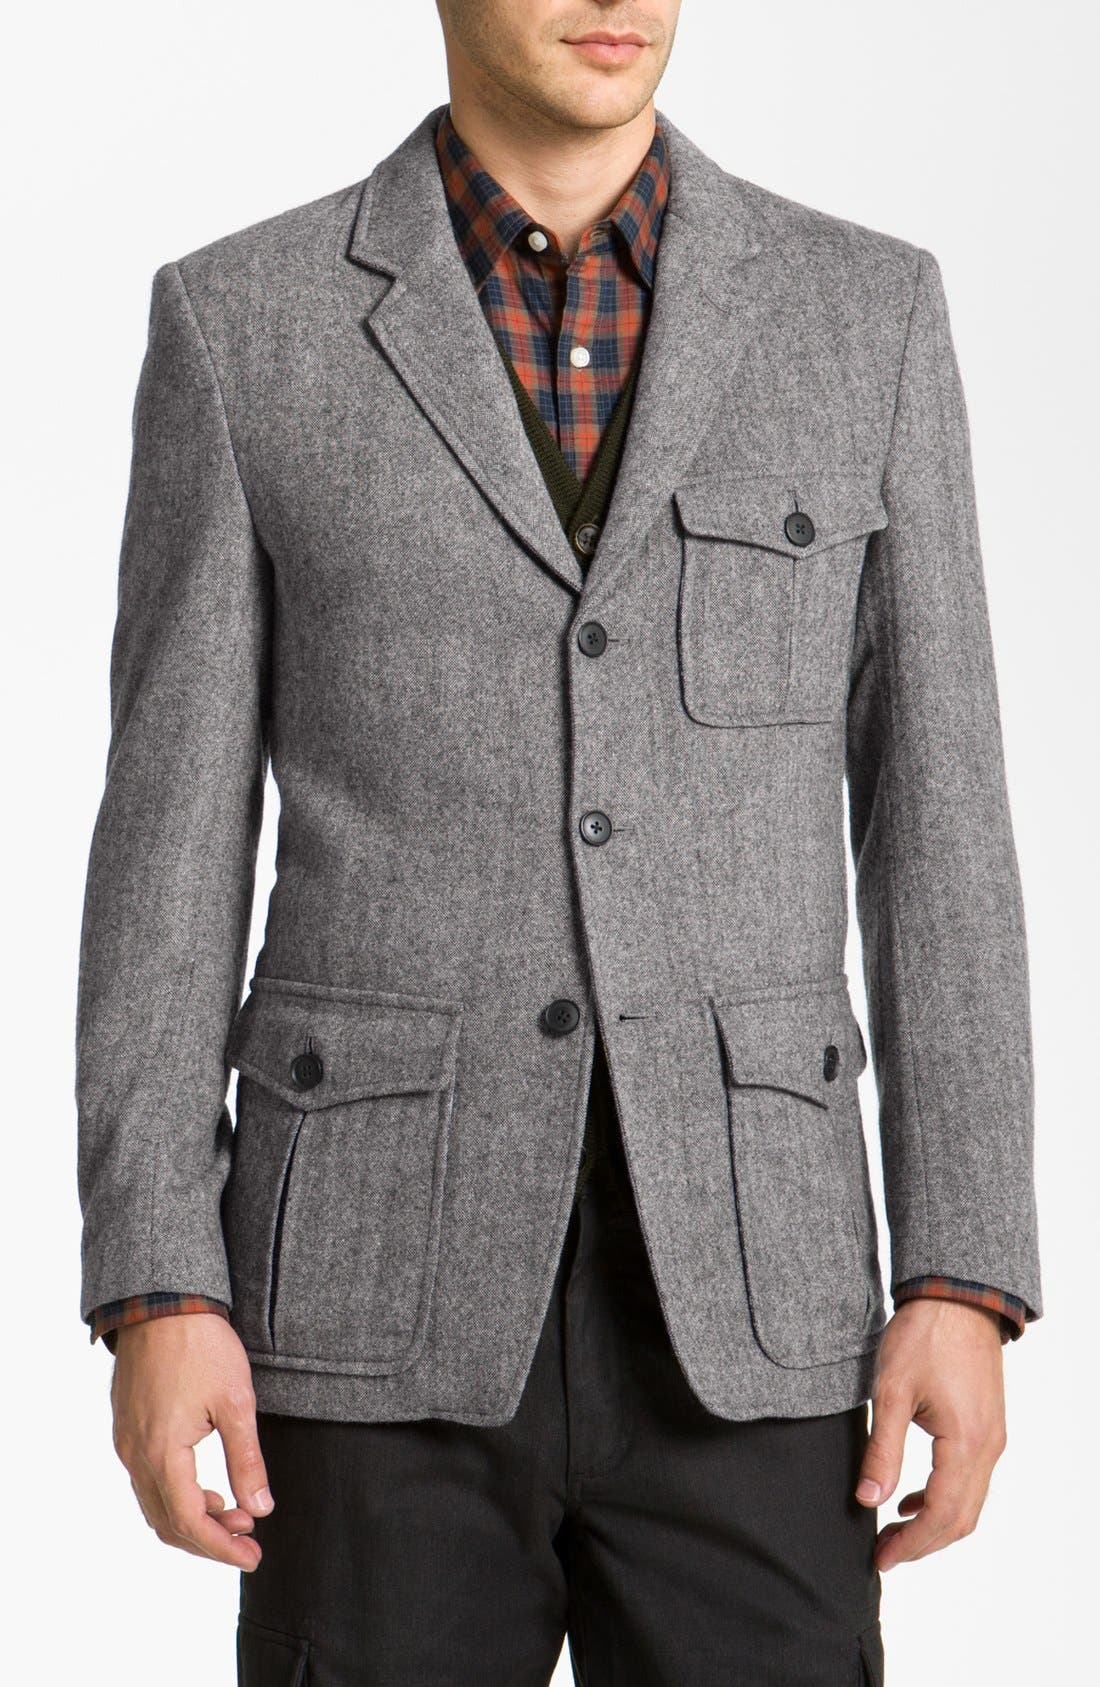 Main Image - Wallin & Bros. 'Hunting' Wool Blend Sportcoat